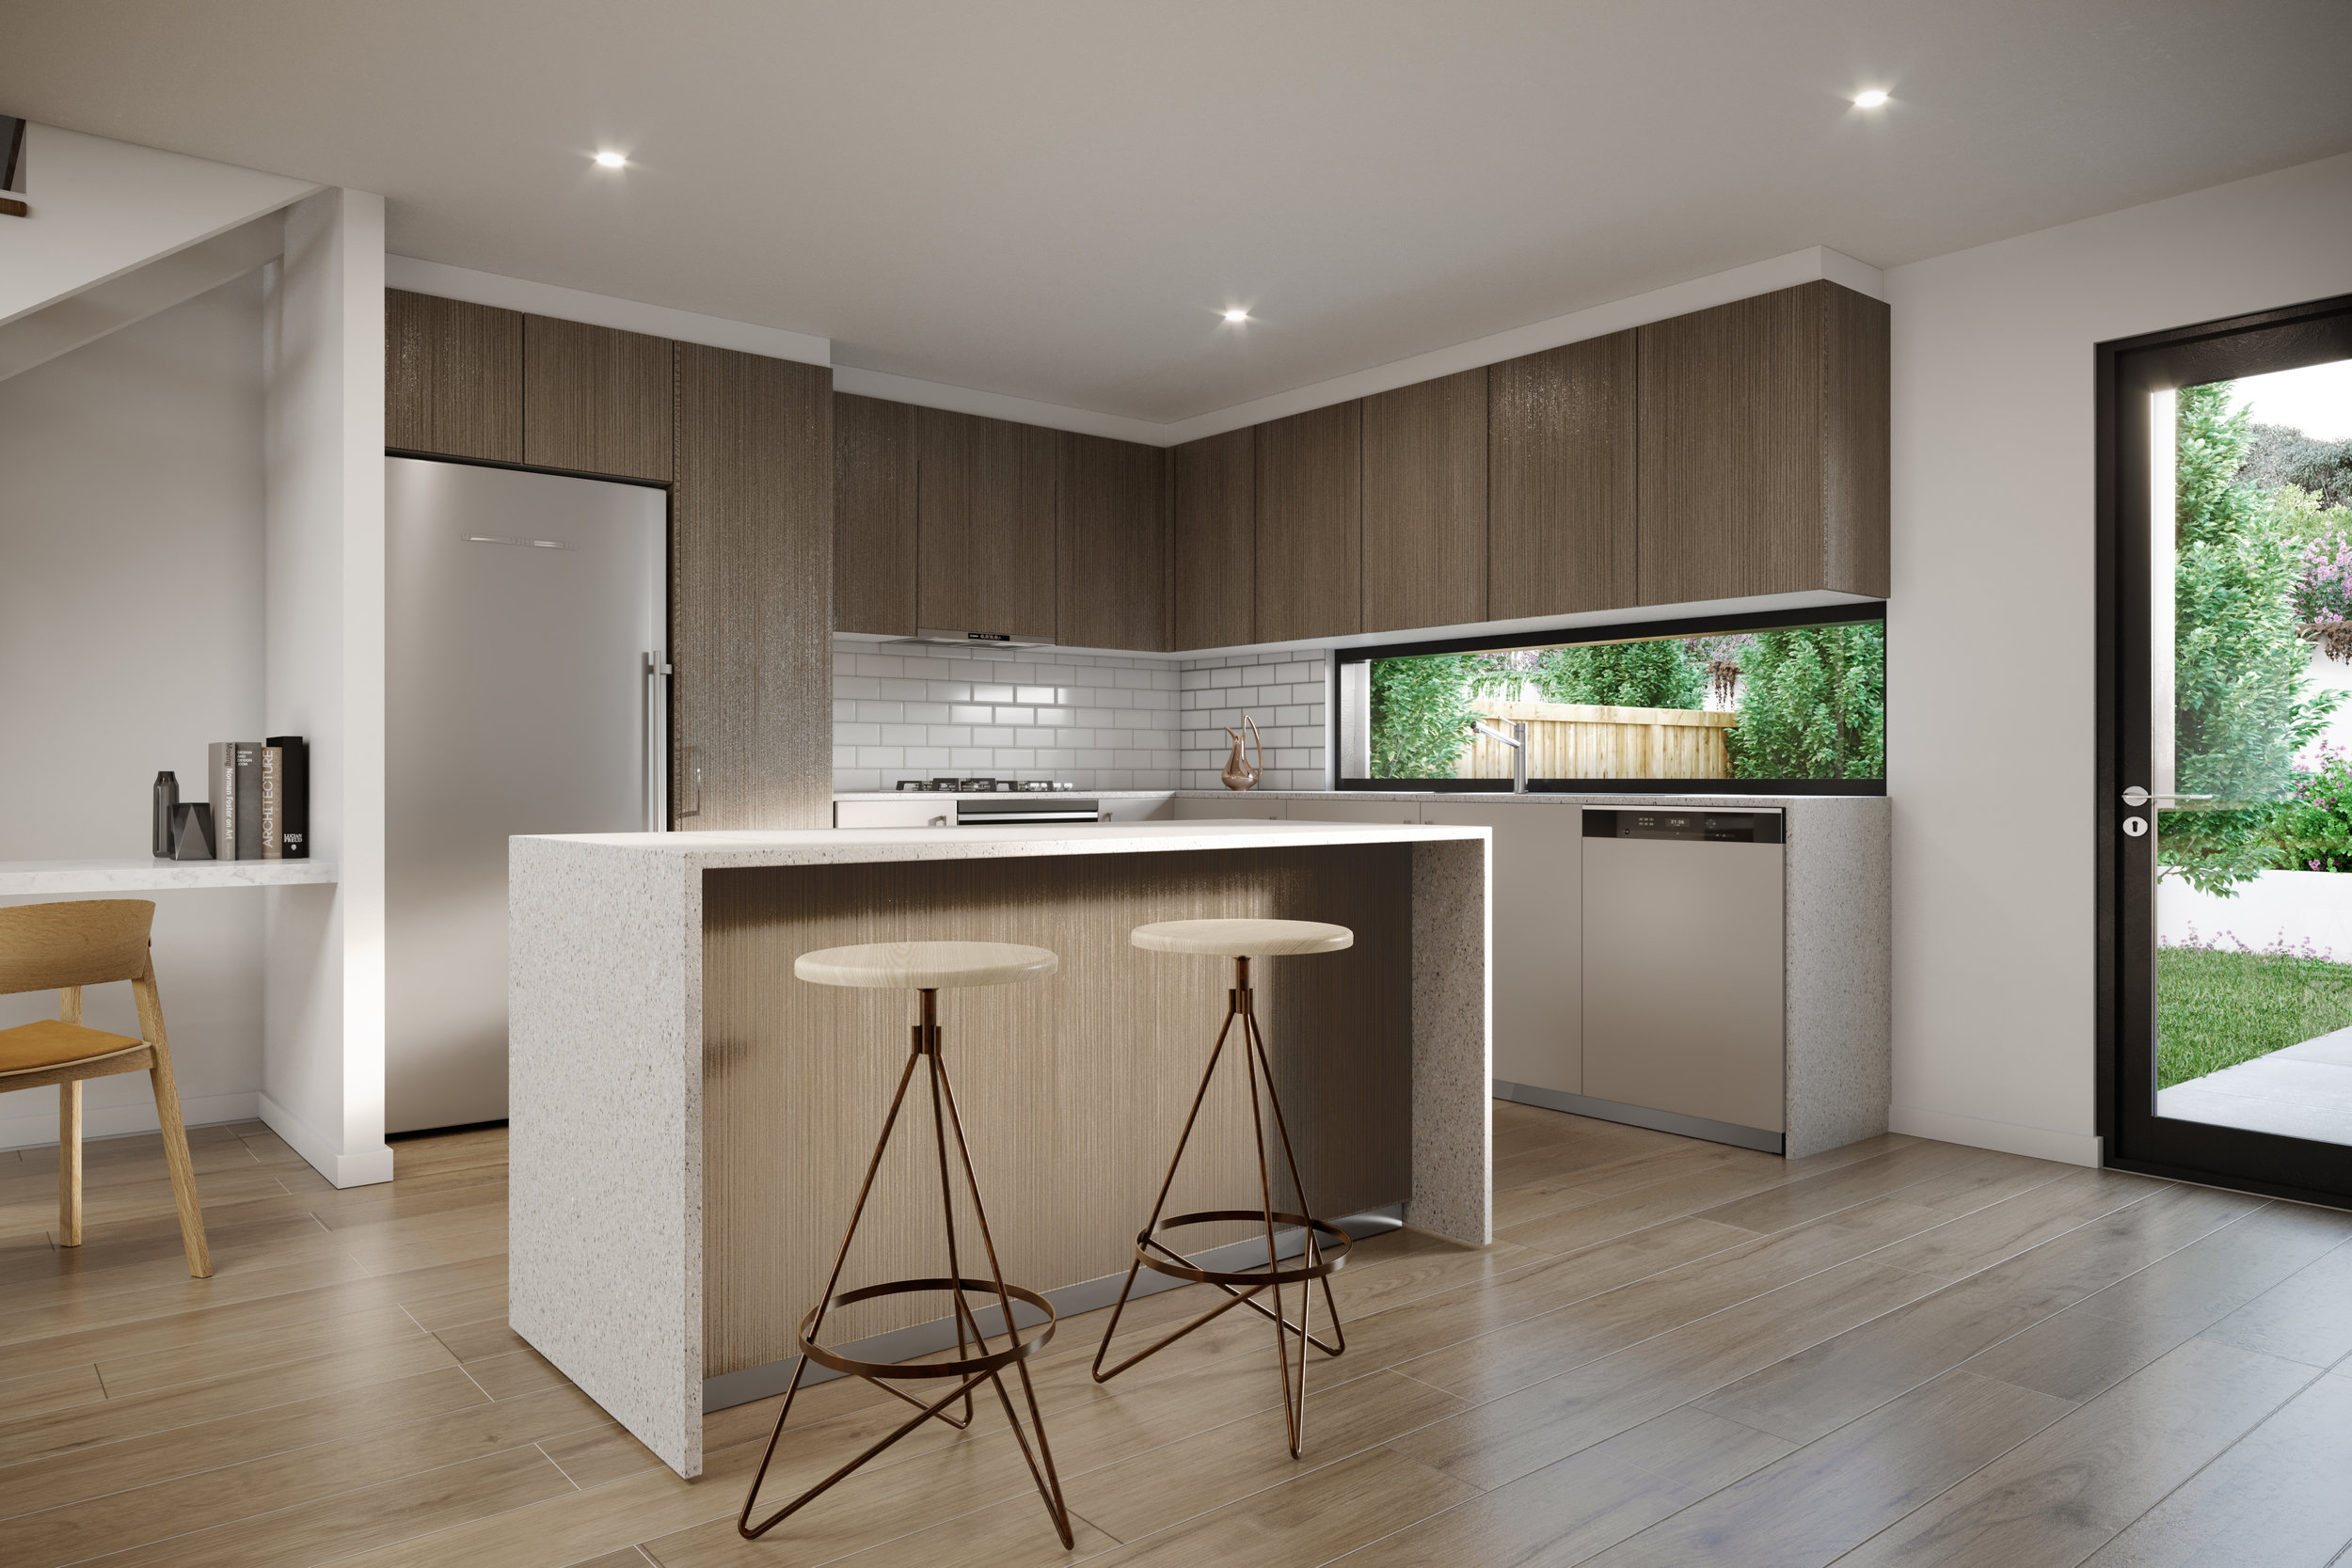 06_VH18-002_INT_TOWHOUSE_KITCHEN.jpg